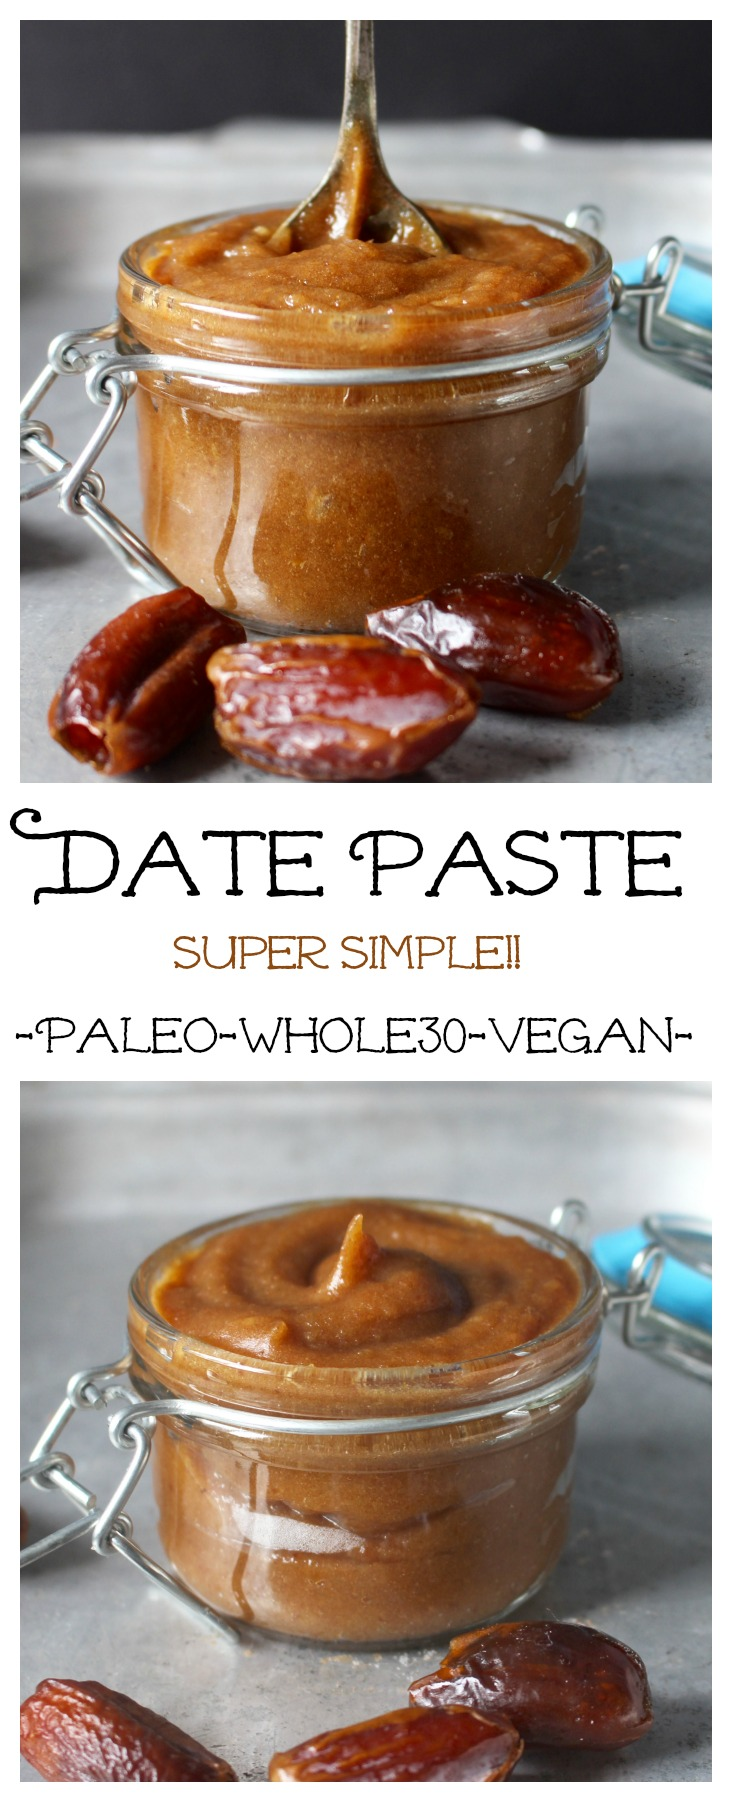 Date Paste (Paleo, Whole30, Vegan)